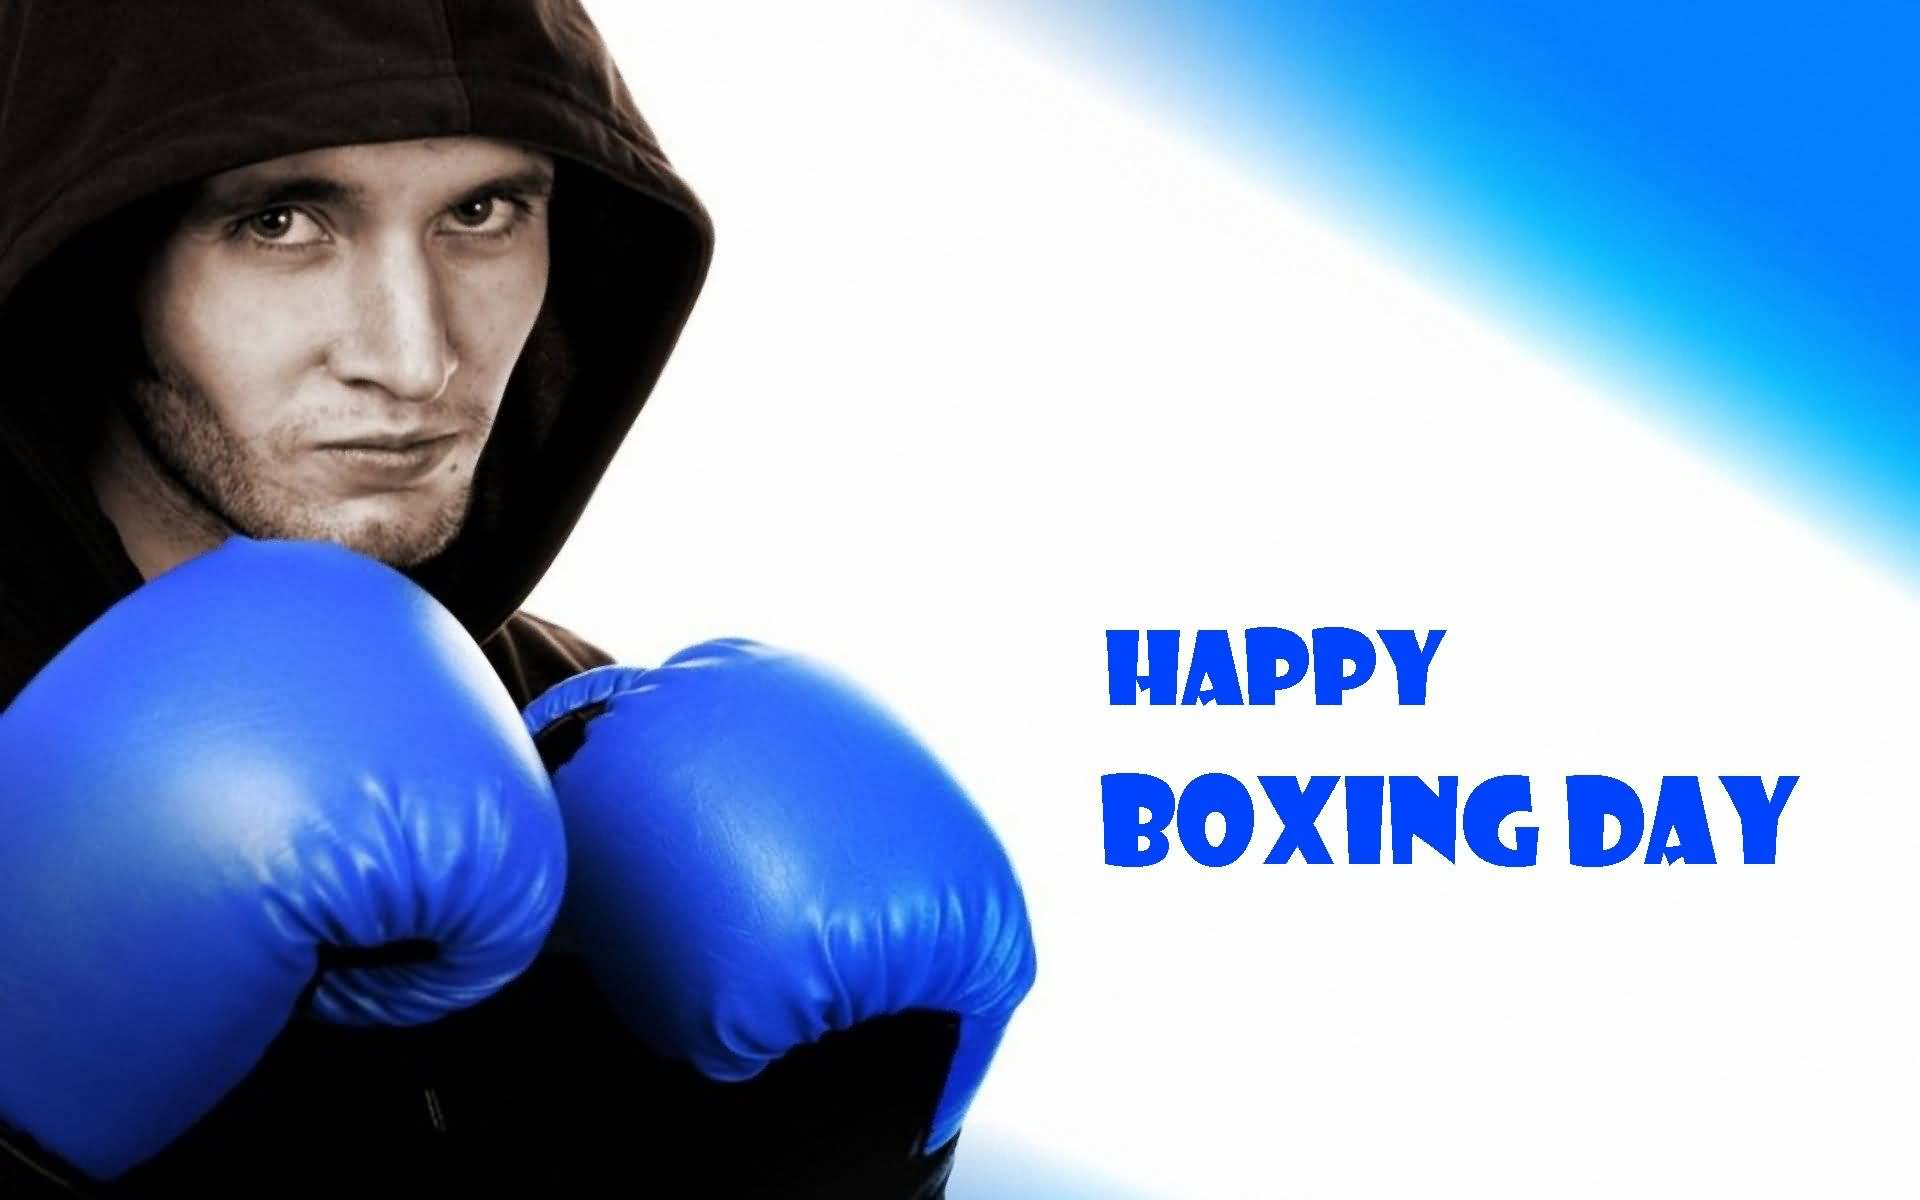 Boxing Day Wishes 44